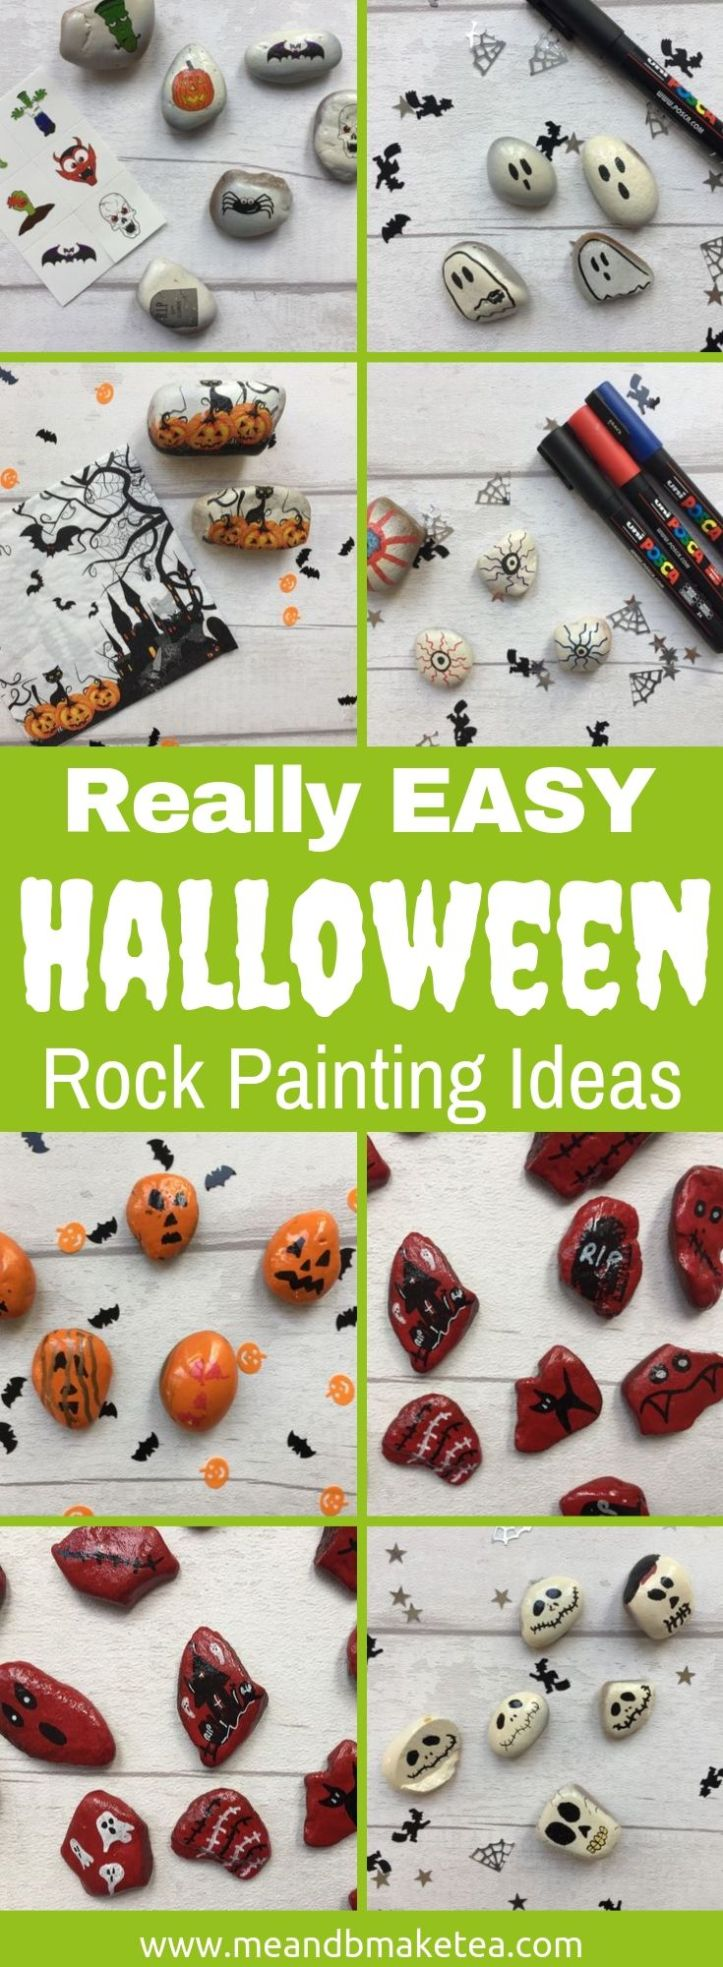 easy-halloween-rock-painting-pebble-decoupage-ideas-to-try